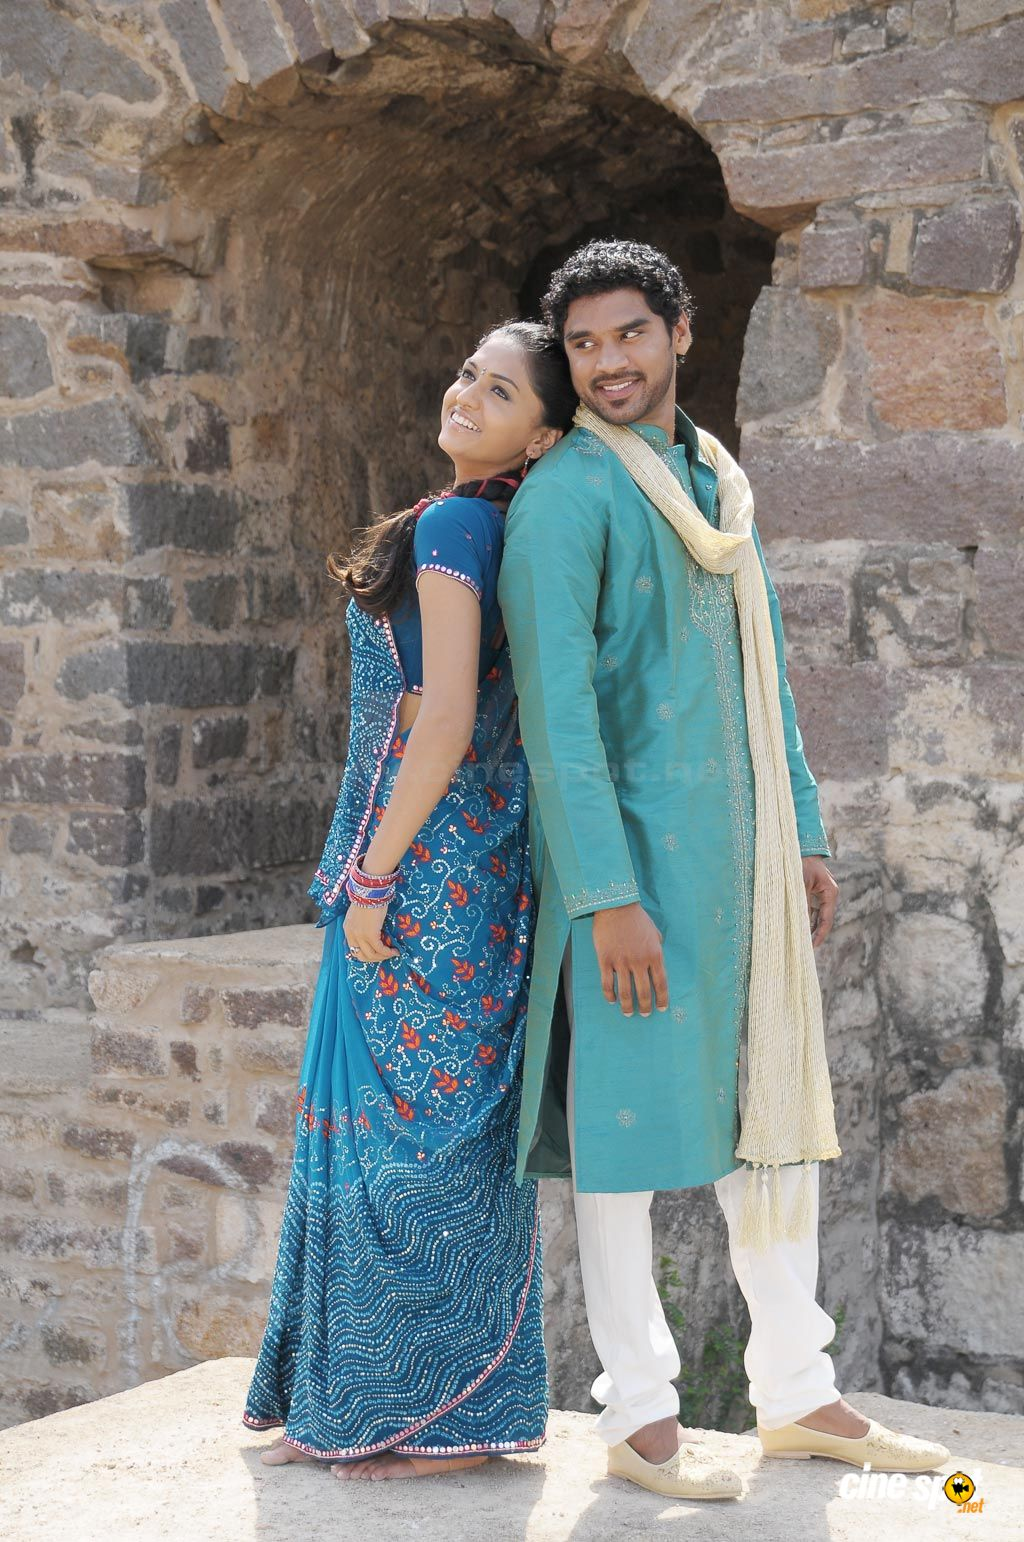 Yathumagi  movie stills,photos ,Yathumagi  movie images,Yathumagi  movie  gallery stills,Yathumagi  movie  pics,Yathumagi  movie photos